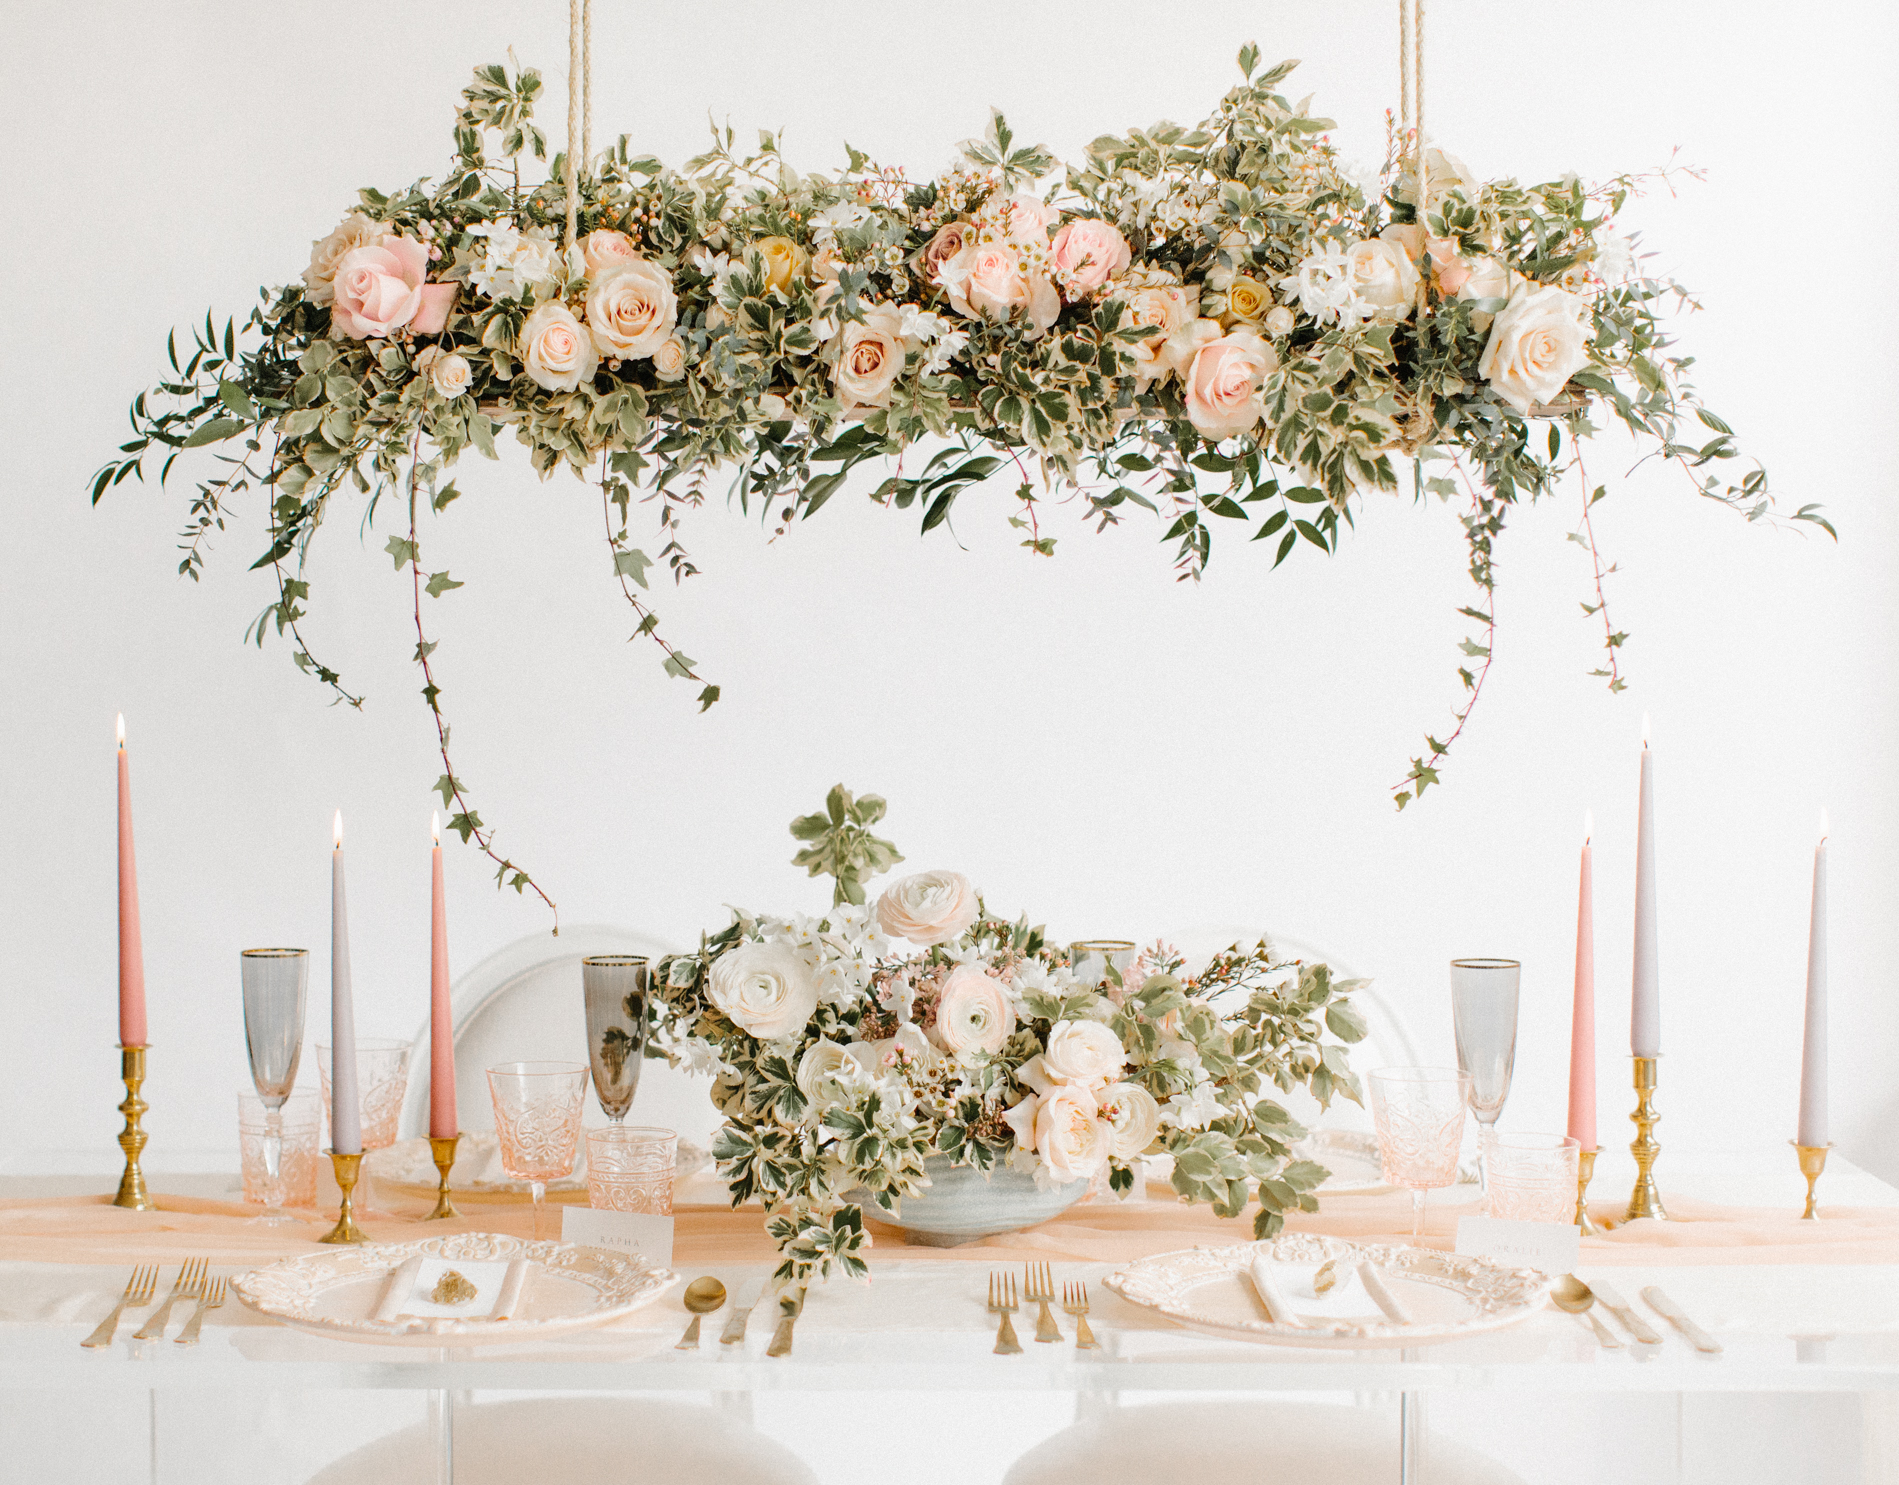 wedding table setting with hanging floral installation and colour palette of white peach pink and grey